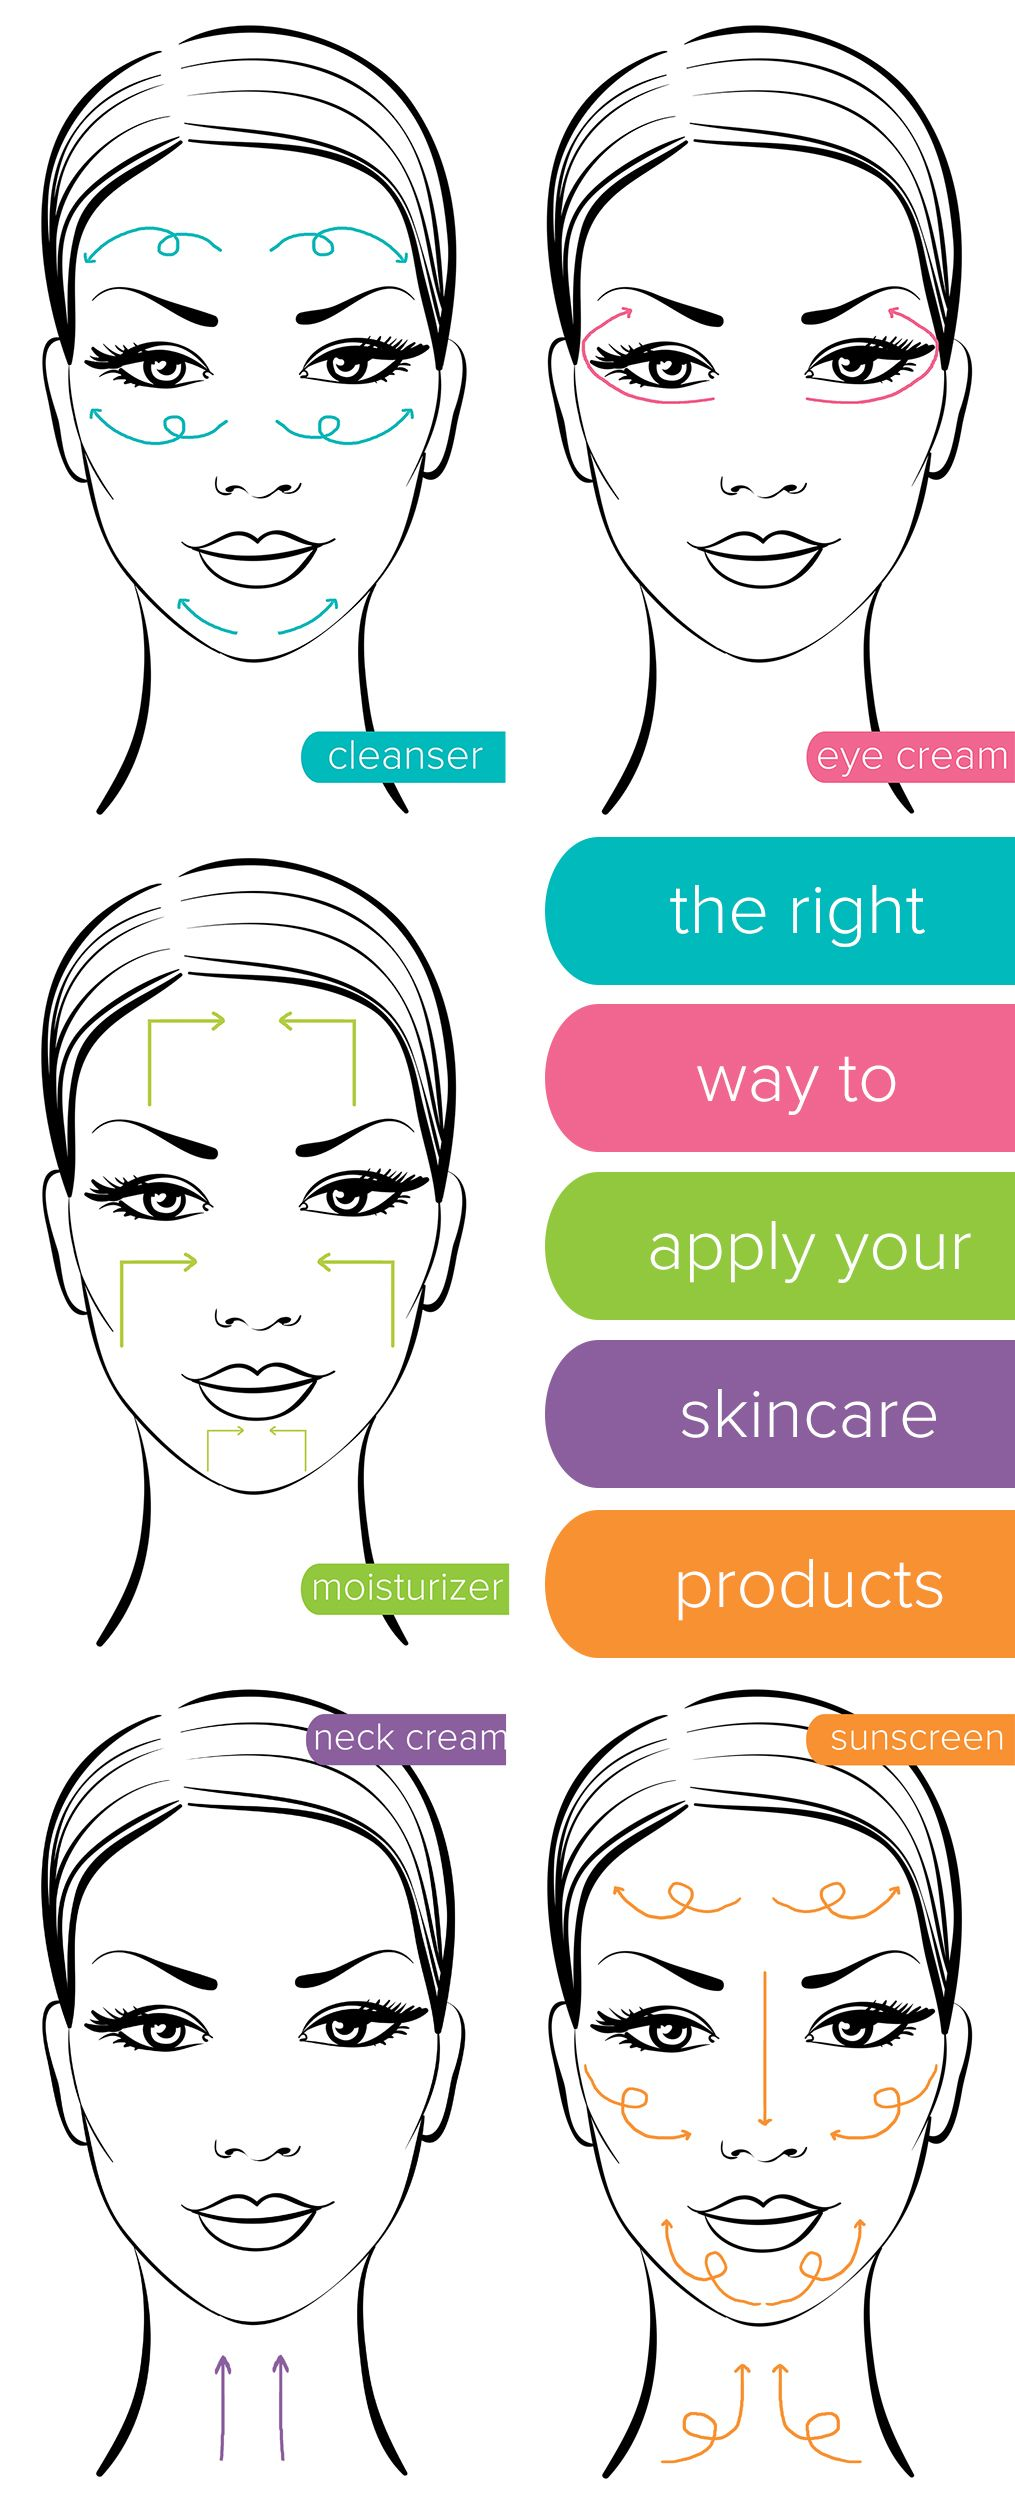 Are you washing your face the right way